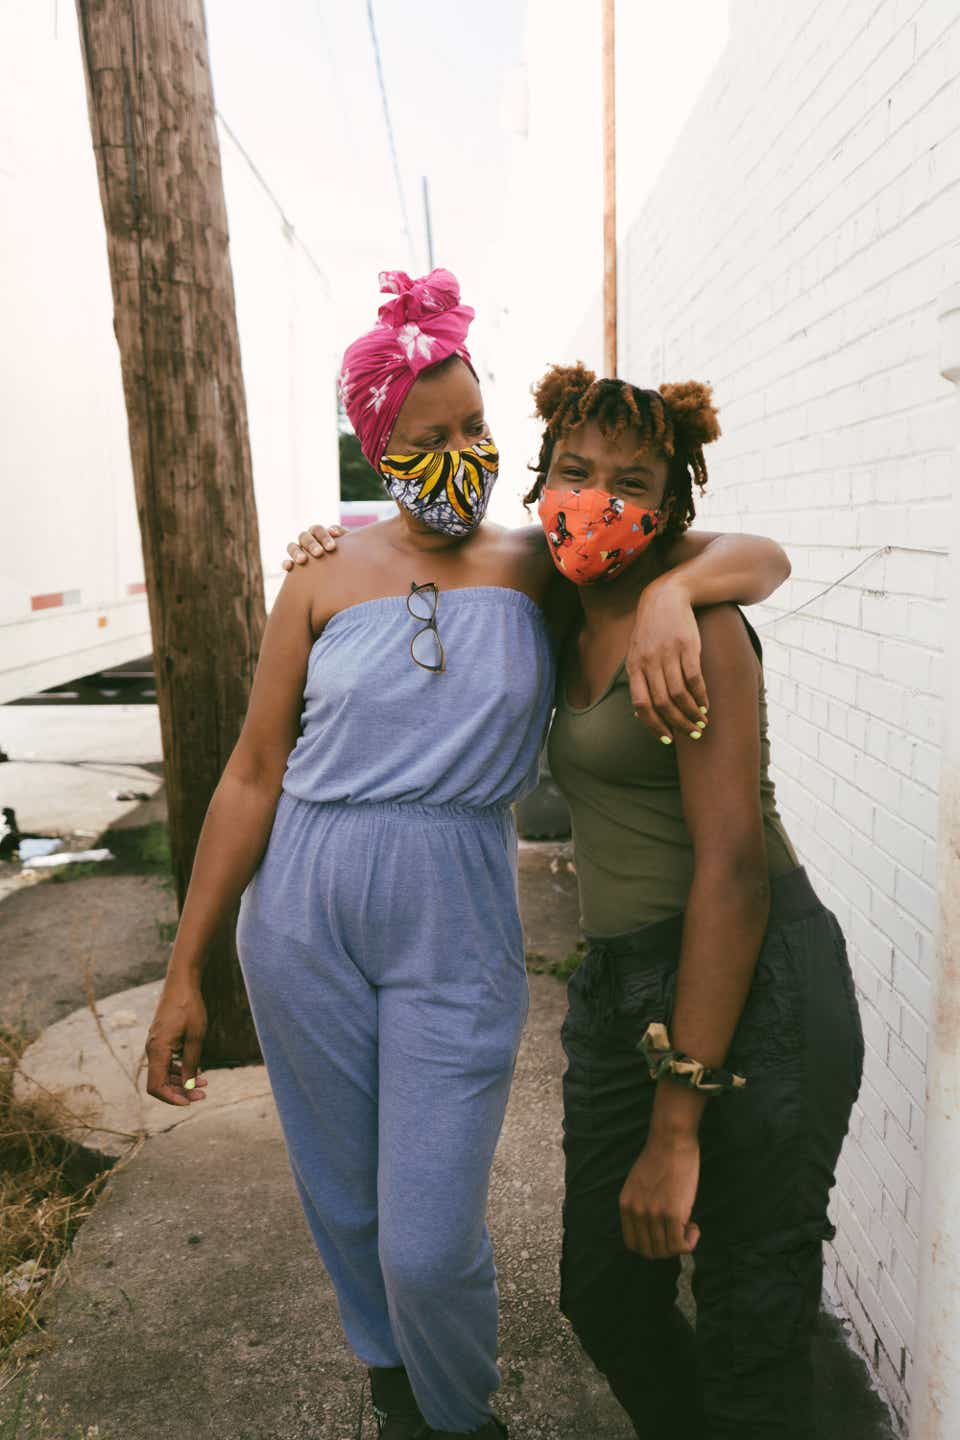 This is a photo of two sisters, one with the arm around the other. Meredith (on the left) is wearing a pink headscarf with a yellow, patterned face mask, and a light blue, strapless jumpsuit. Her sister Brooklyn is wearing her hair in space buns, and has on an orange face mask, a forest green tank top, and black pants.